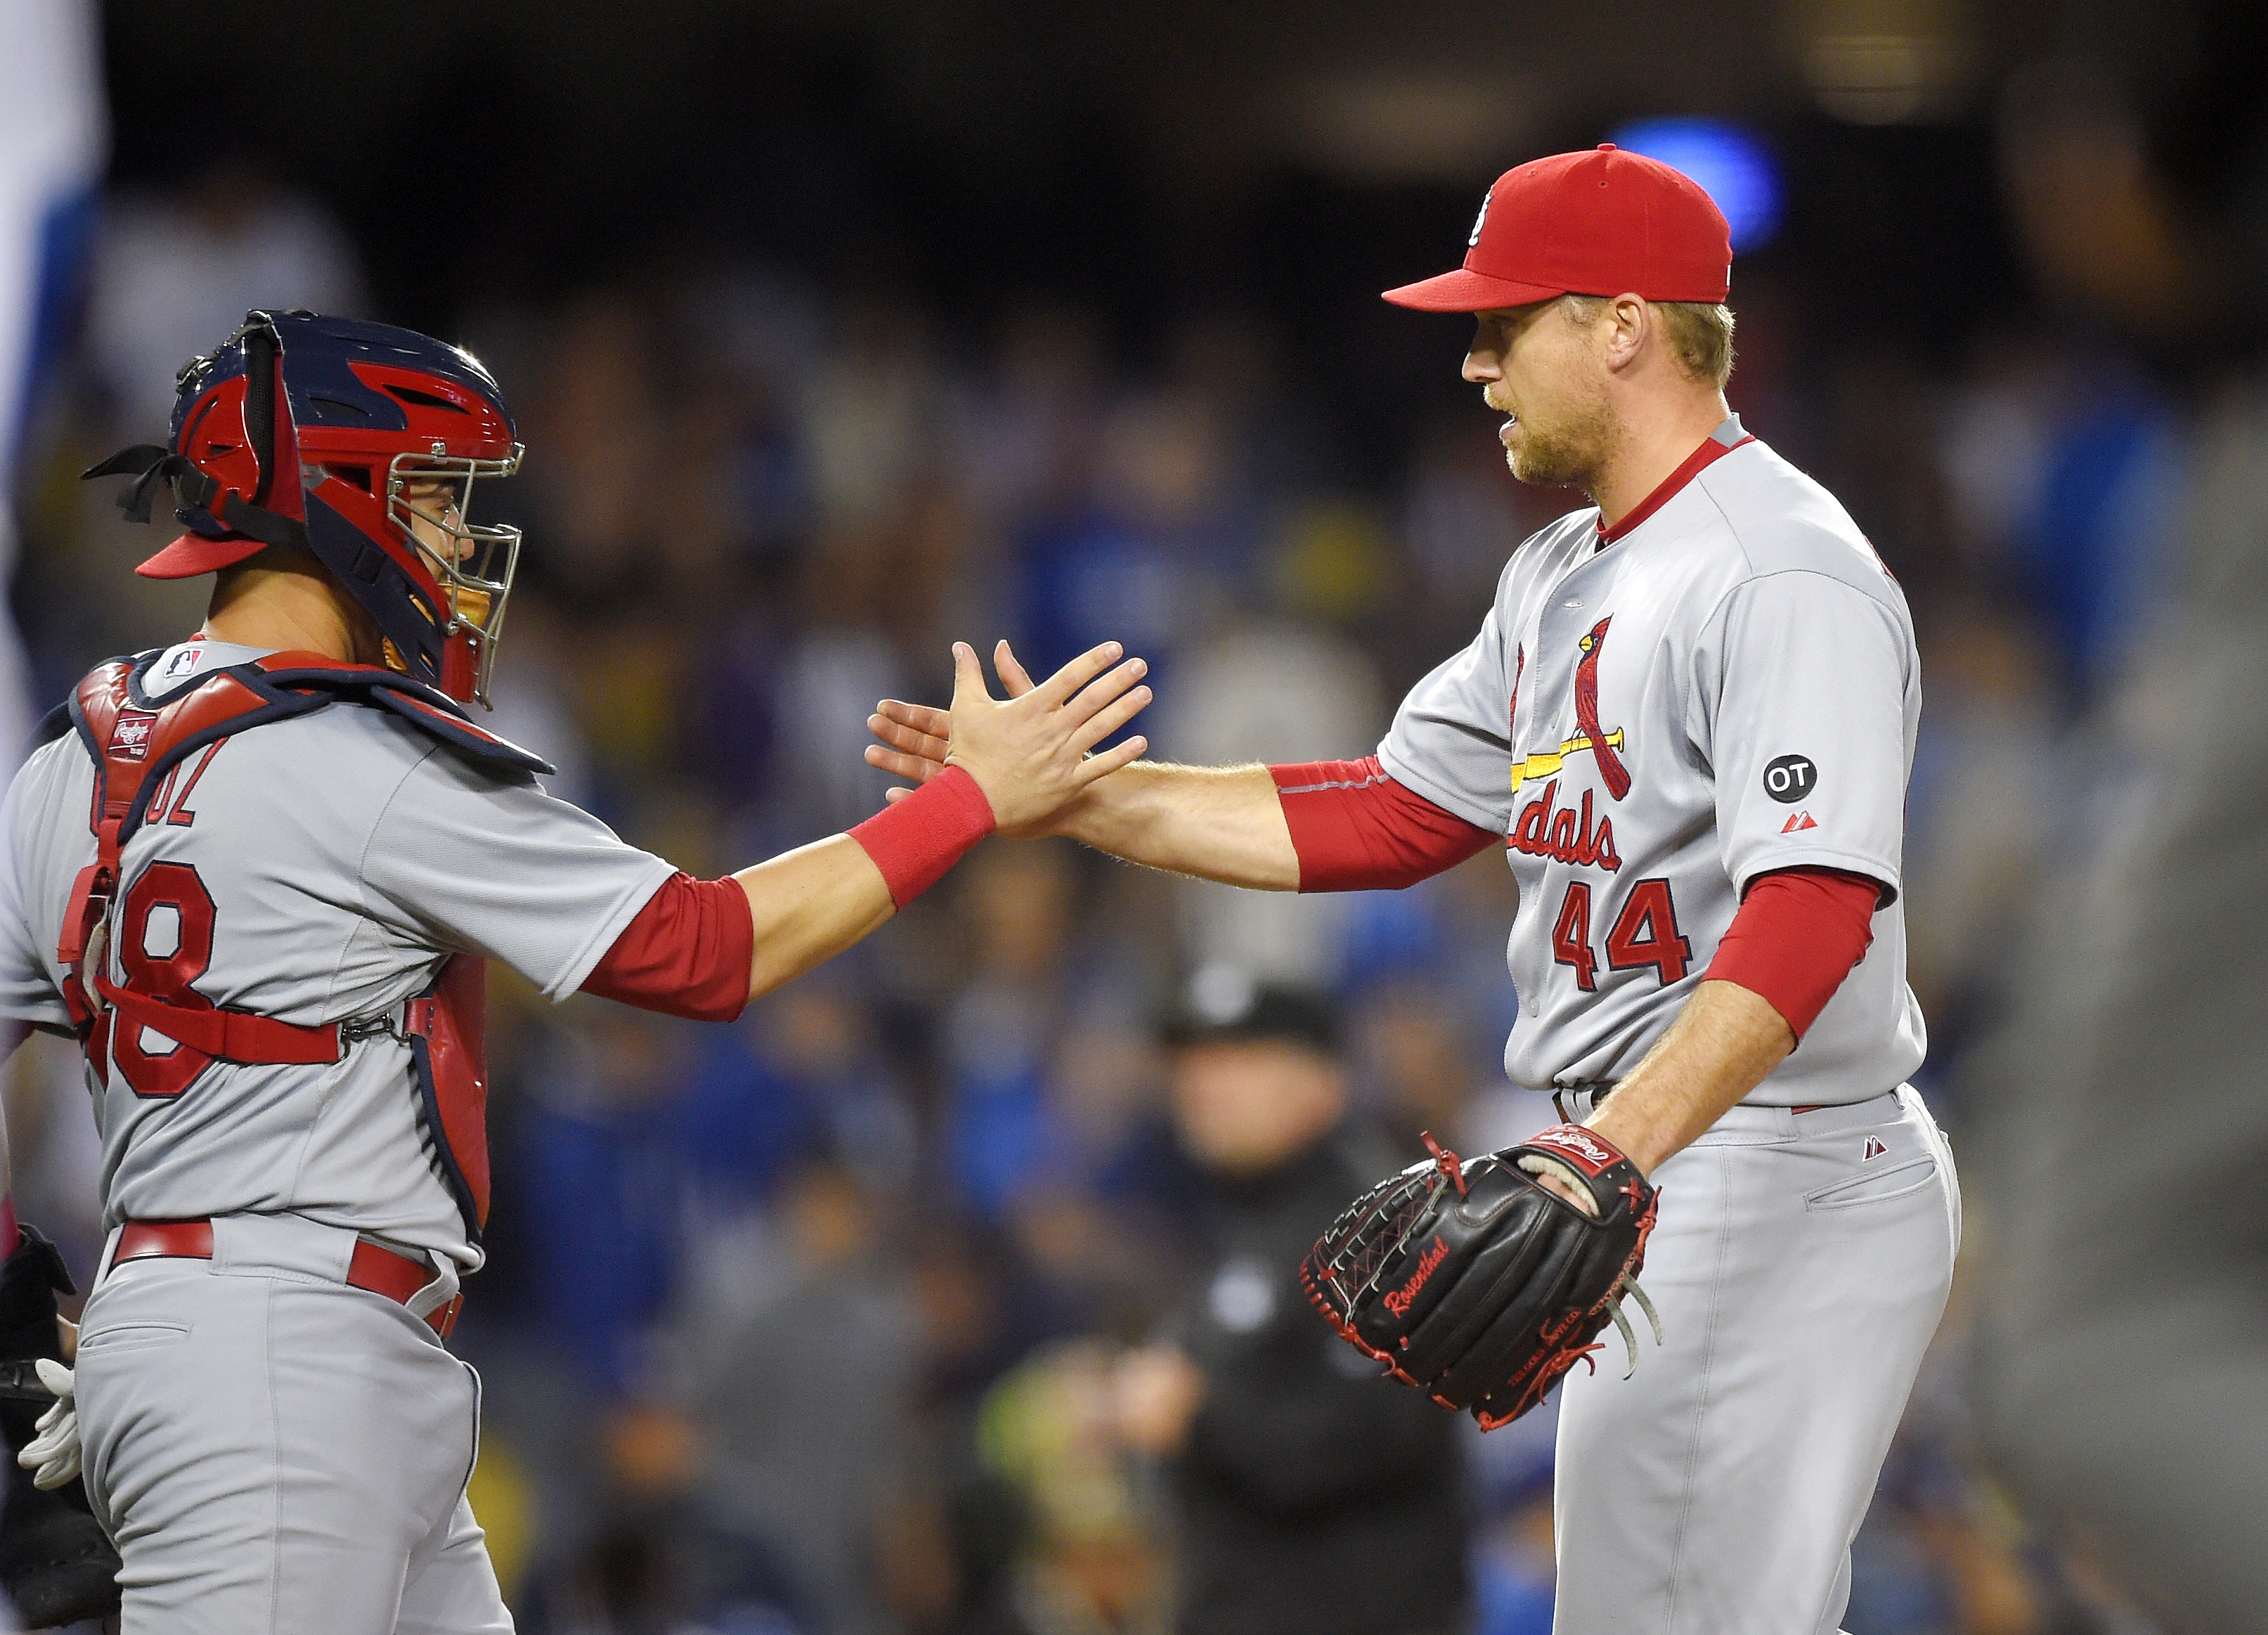 St. Louis Cardinals catcher Tony Cruz, left, and relief pitcher Trevor Rosenthal congratulated each other after the Cardinals defeated the Los Angeles Dodgers 2-1 in a baseball game, Friday, June 5, 2015, in Los Angeles. (AP Photo/Mark J. Terrill)